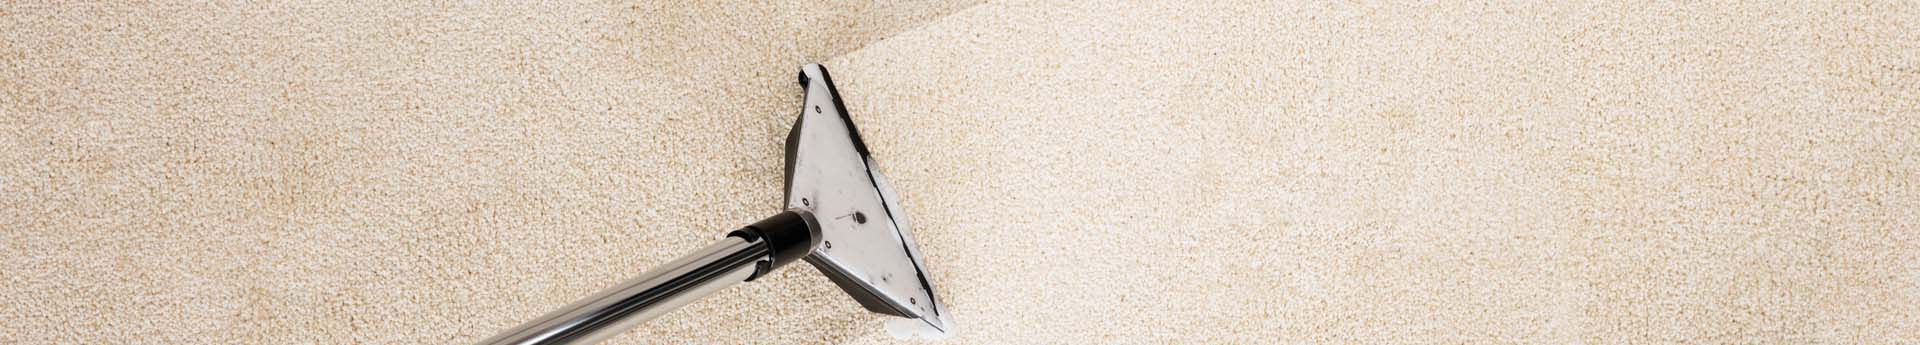 Carpet Steam Cleaning Service Steam Cleaning Company